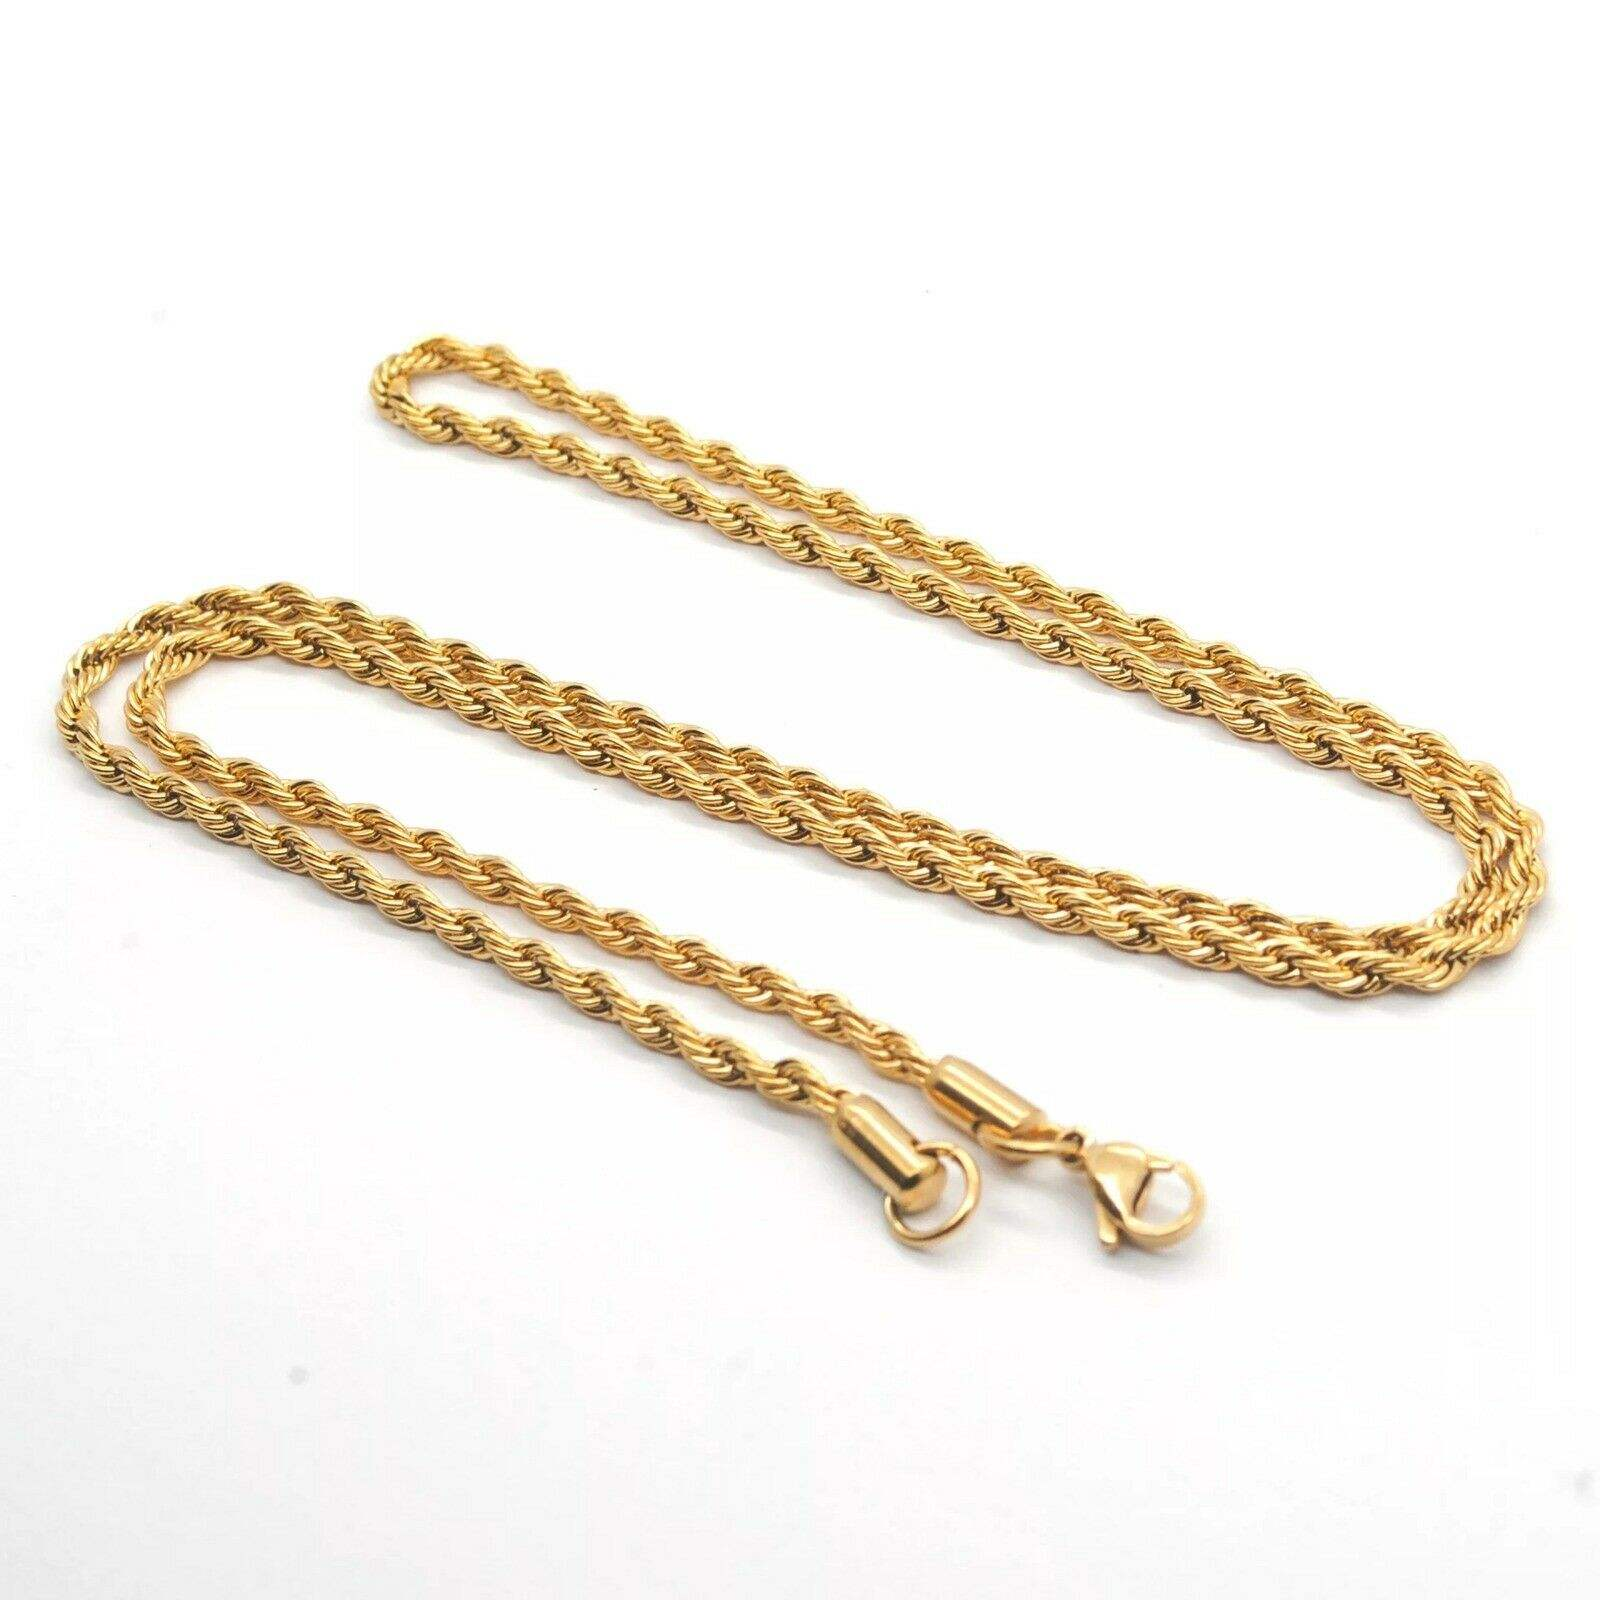 18K Yellow Gold GP 3MM Twist Rope Chain WOMEN MEN Solid Charm Necklace GIFT